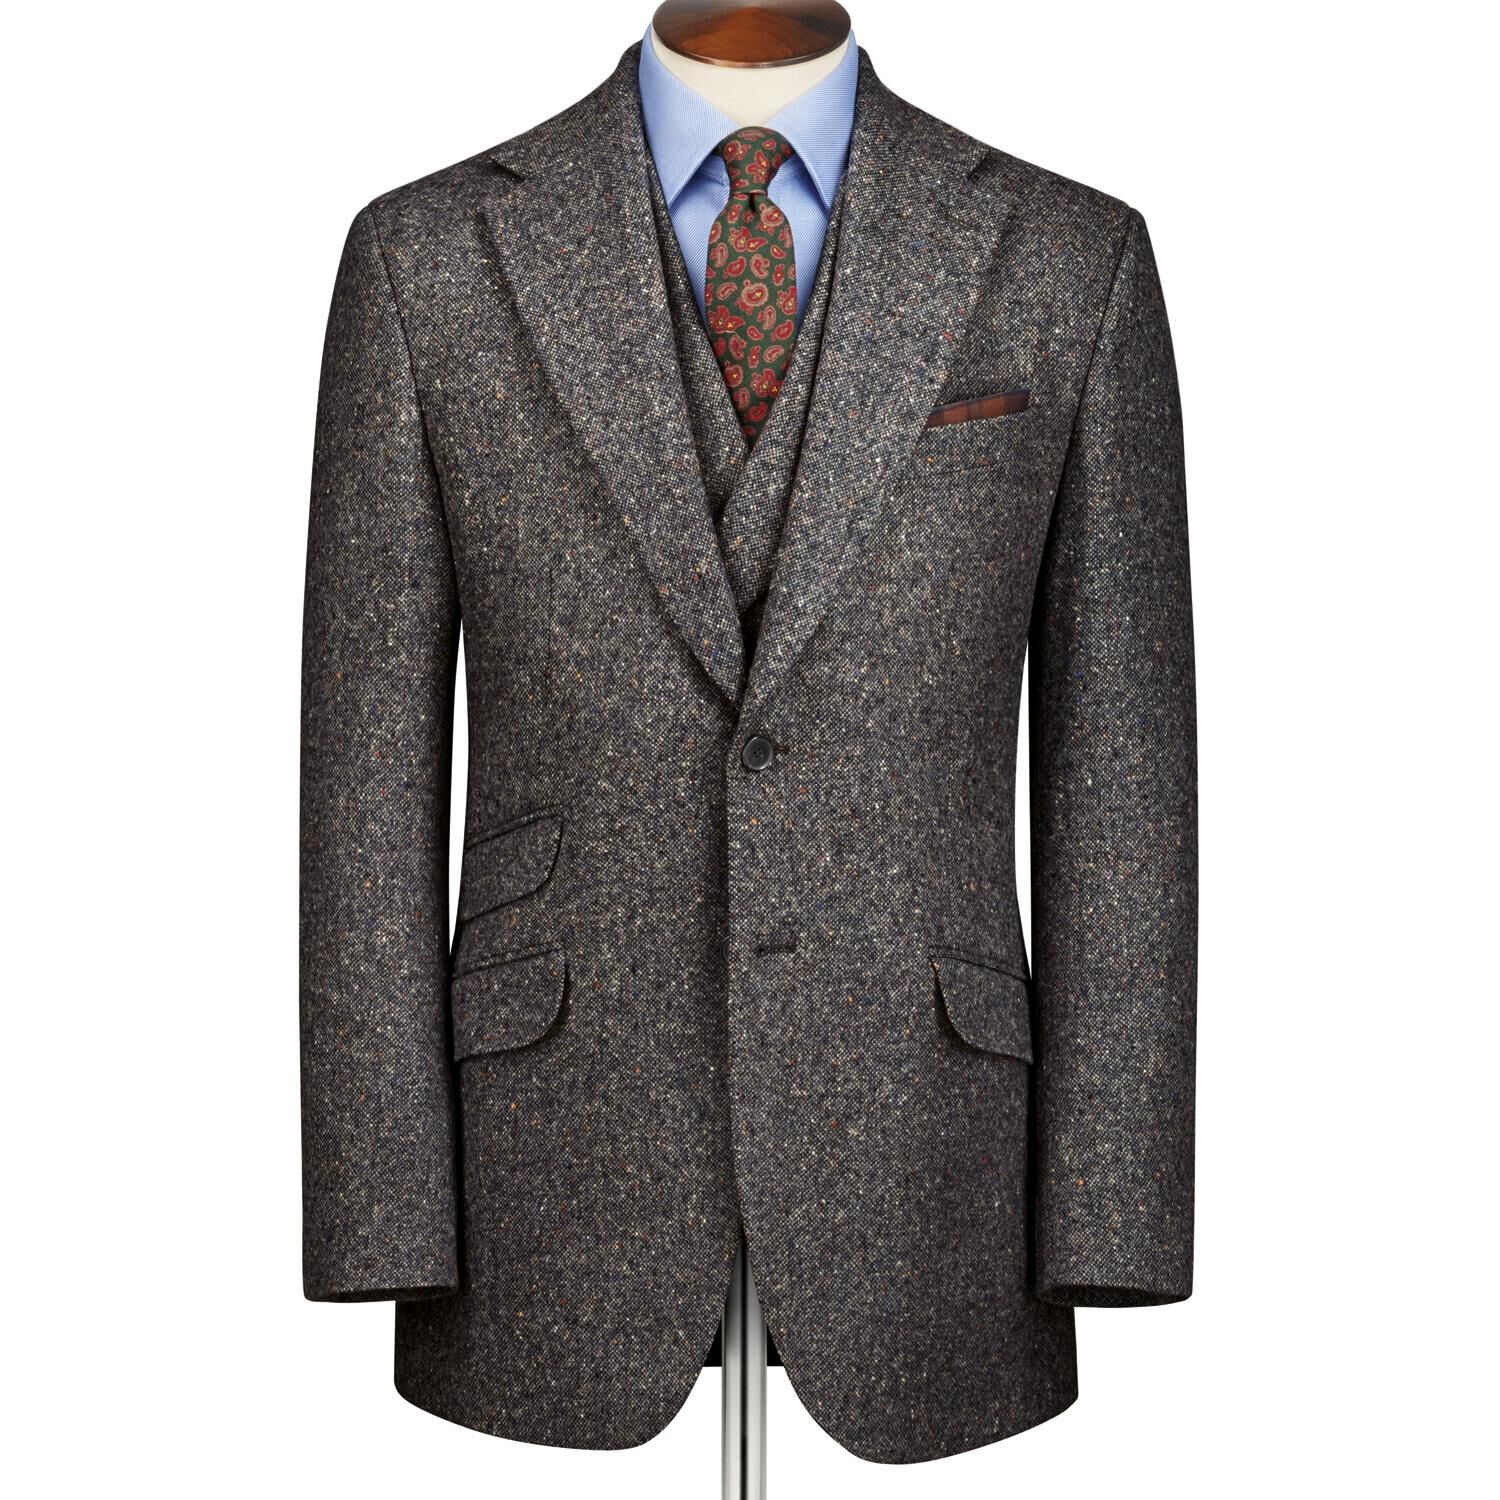 Grey Slim Fit Donegal Tweed Wool Jacket Size 40 by Charles Tyrwhitt